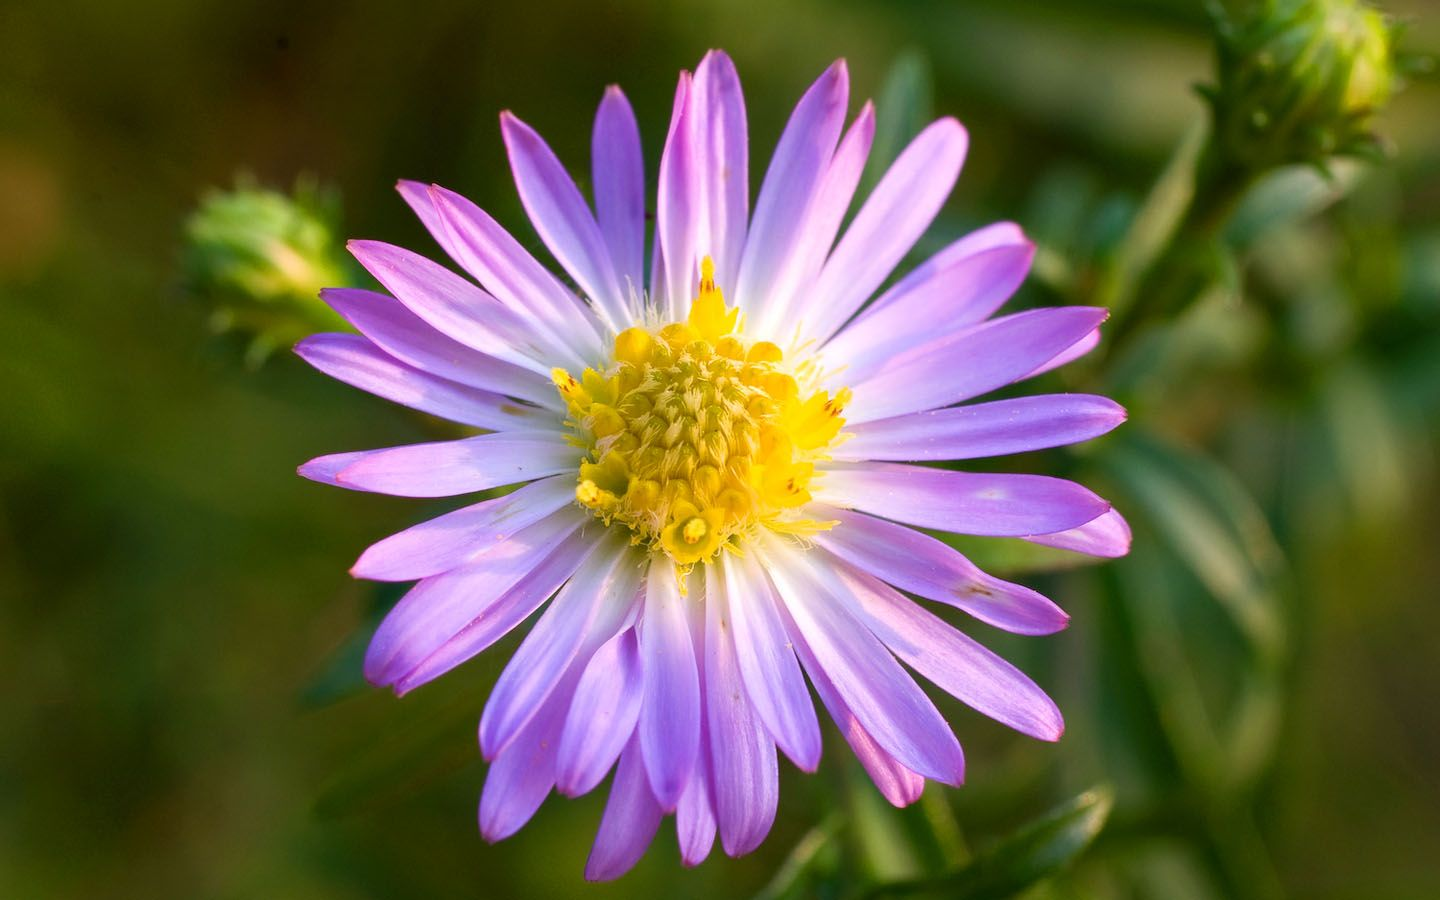 Aster flower meaning aster pinterest aster flower aster and aster flower meaning izmirmasajfo Image collections